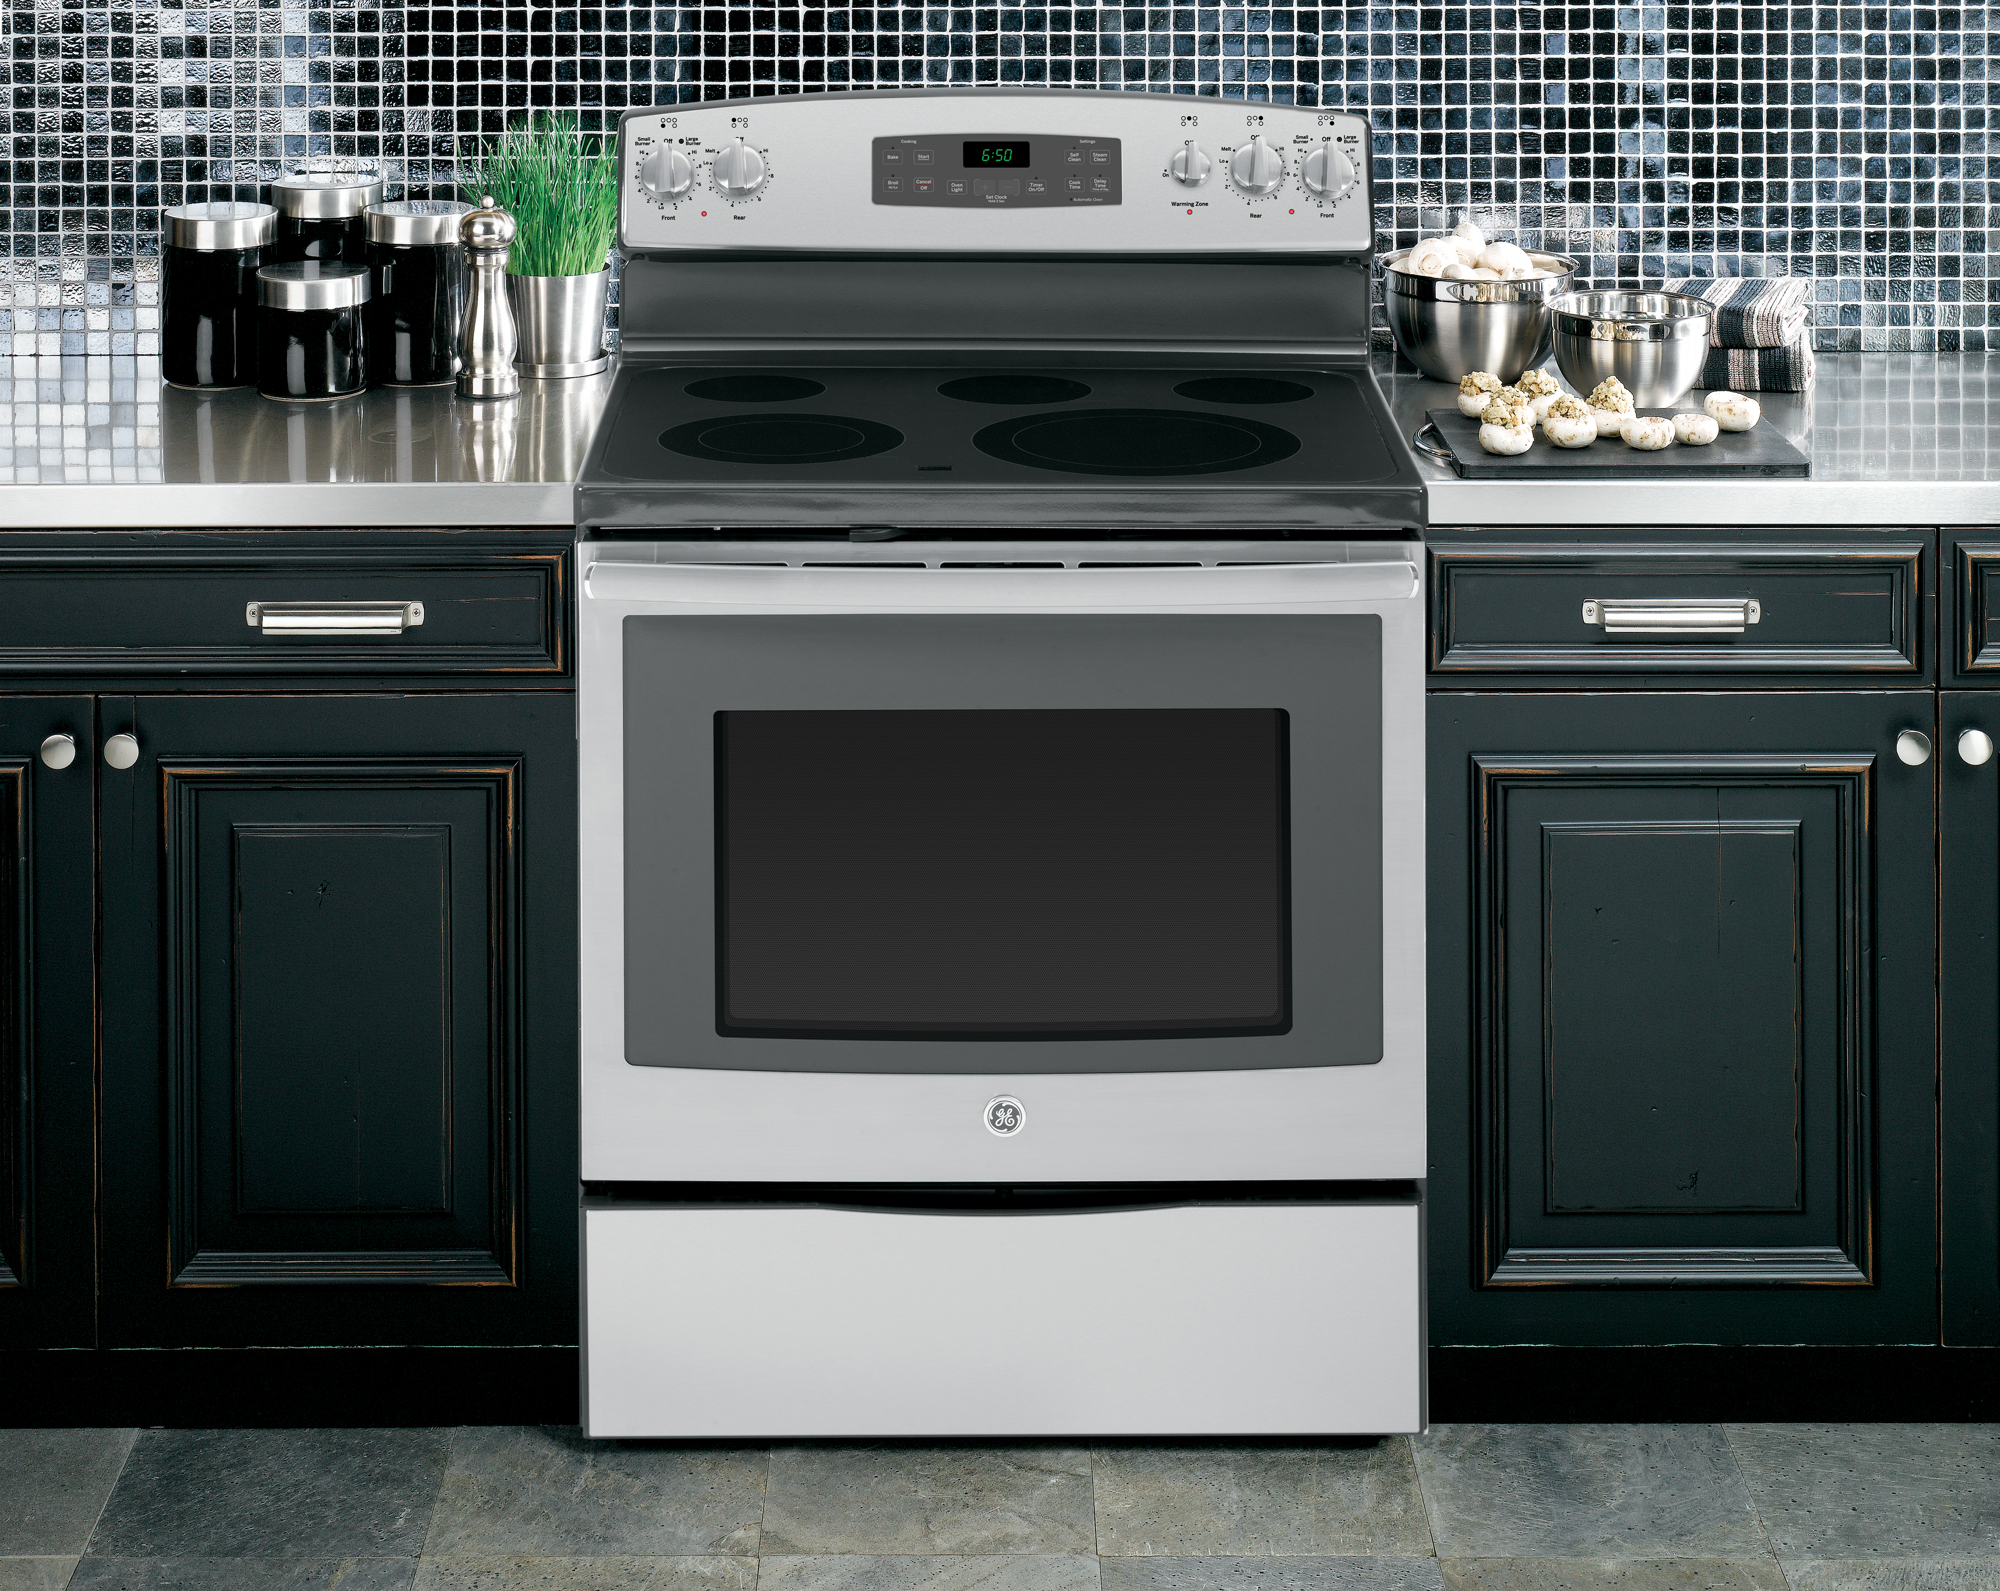 GE Appliances JB650SFSS 5.3 cu. ft. Electric Range - Stainless